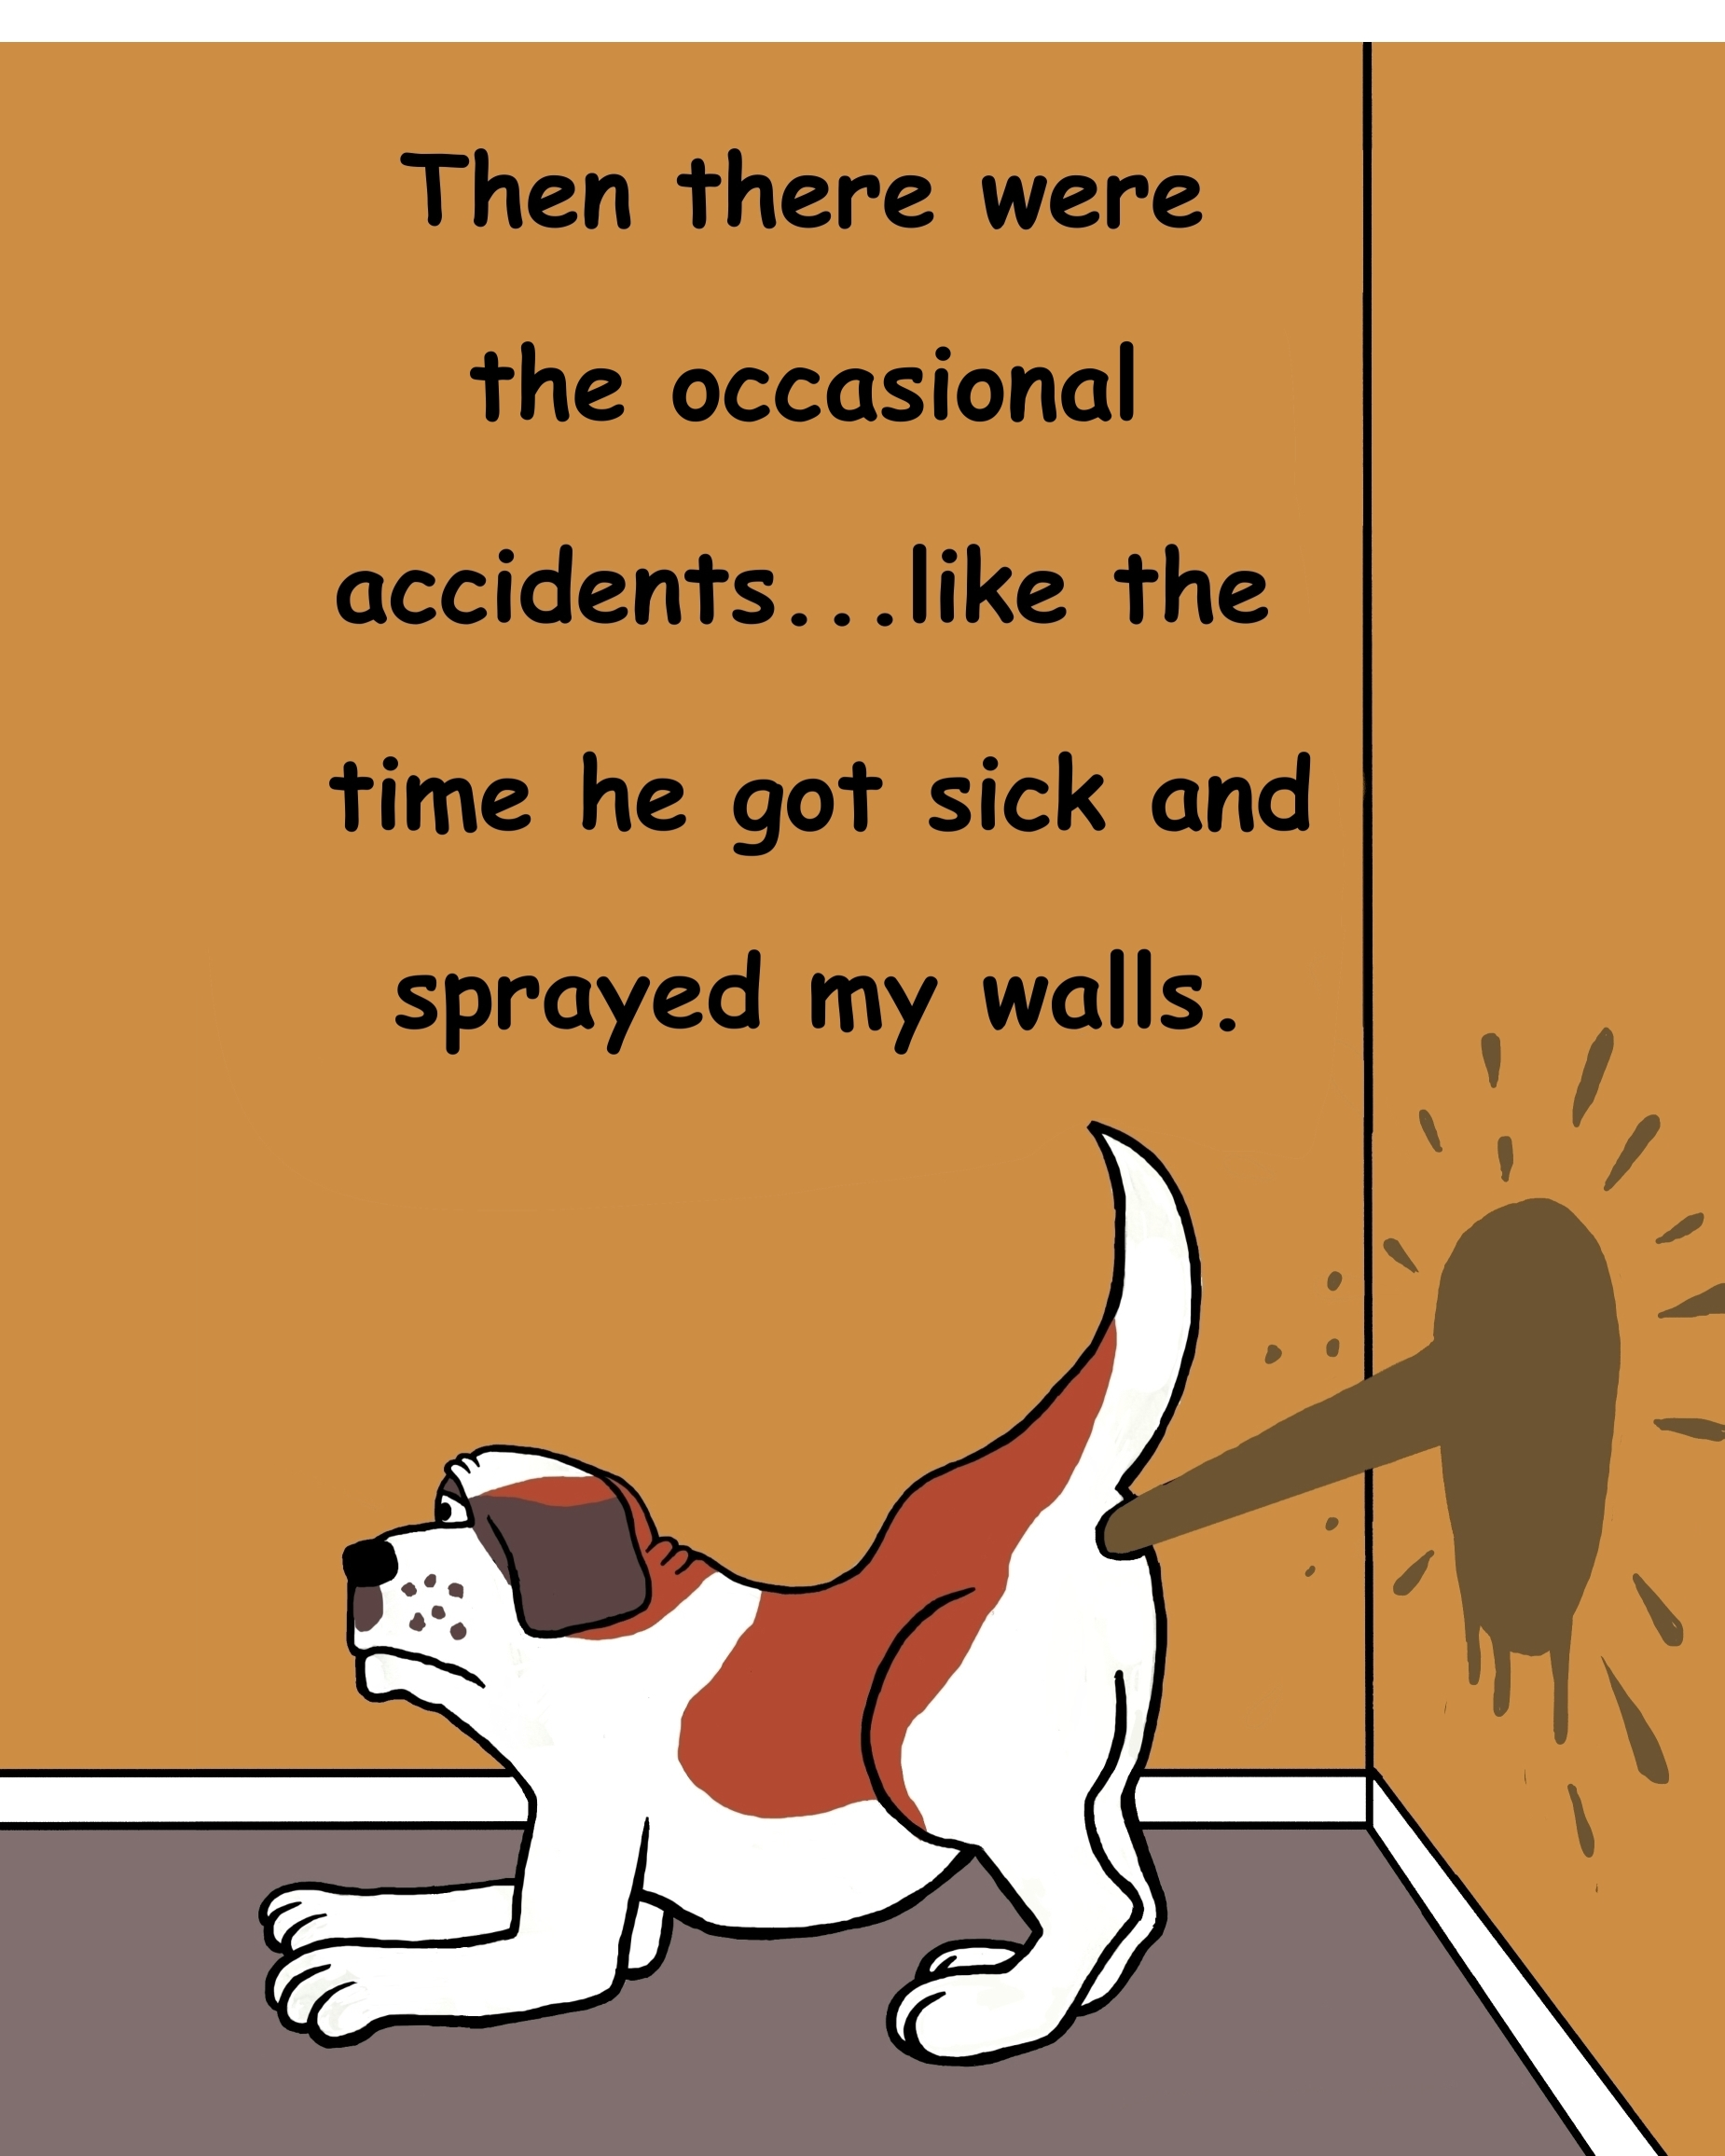 Then, there were the occasional accidents...like the time he got sick and sprayed my walls with diarrhea.